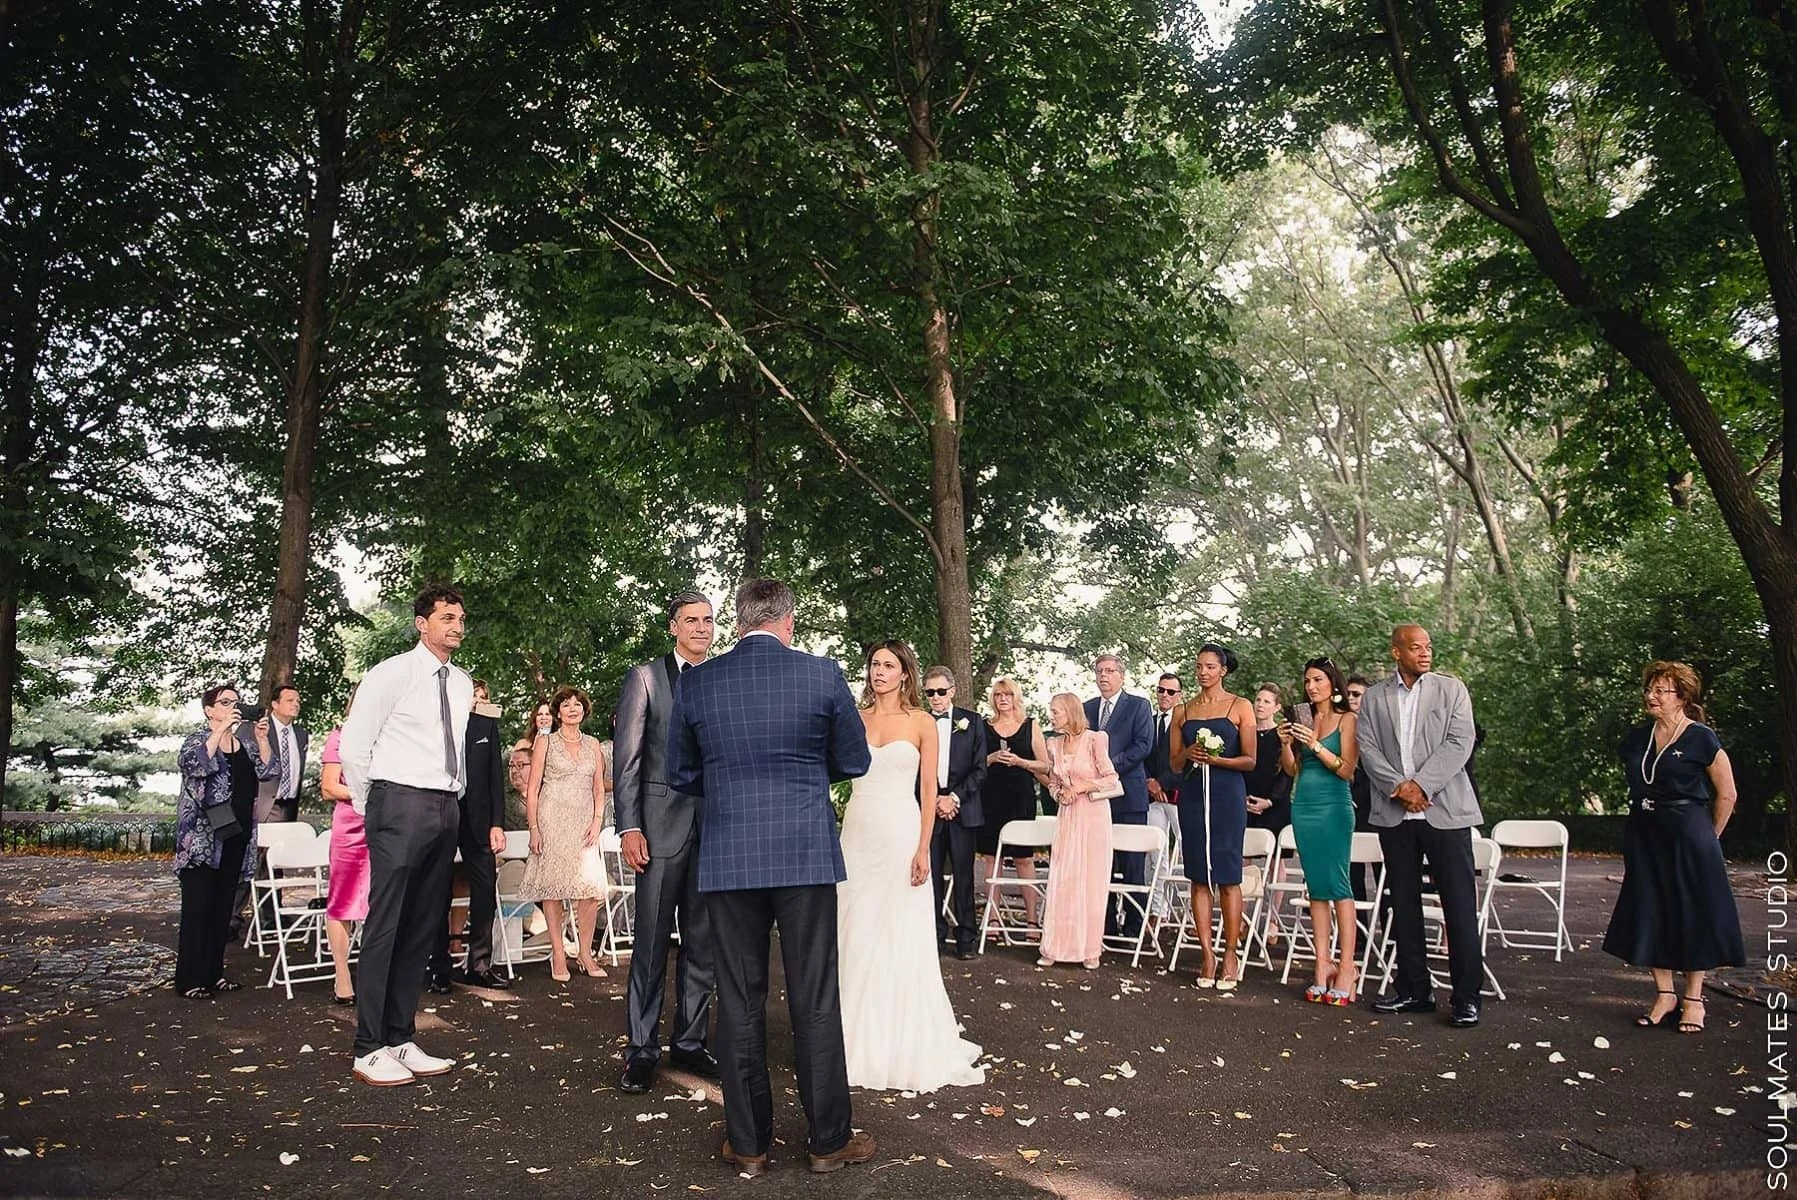 Fort Tryon Park Elopement Wedding Ceremony